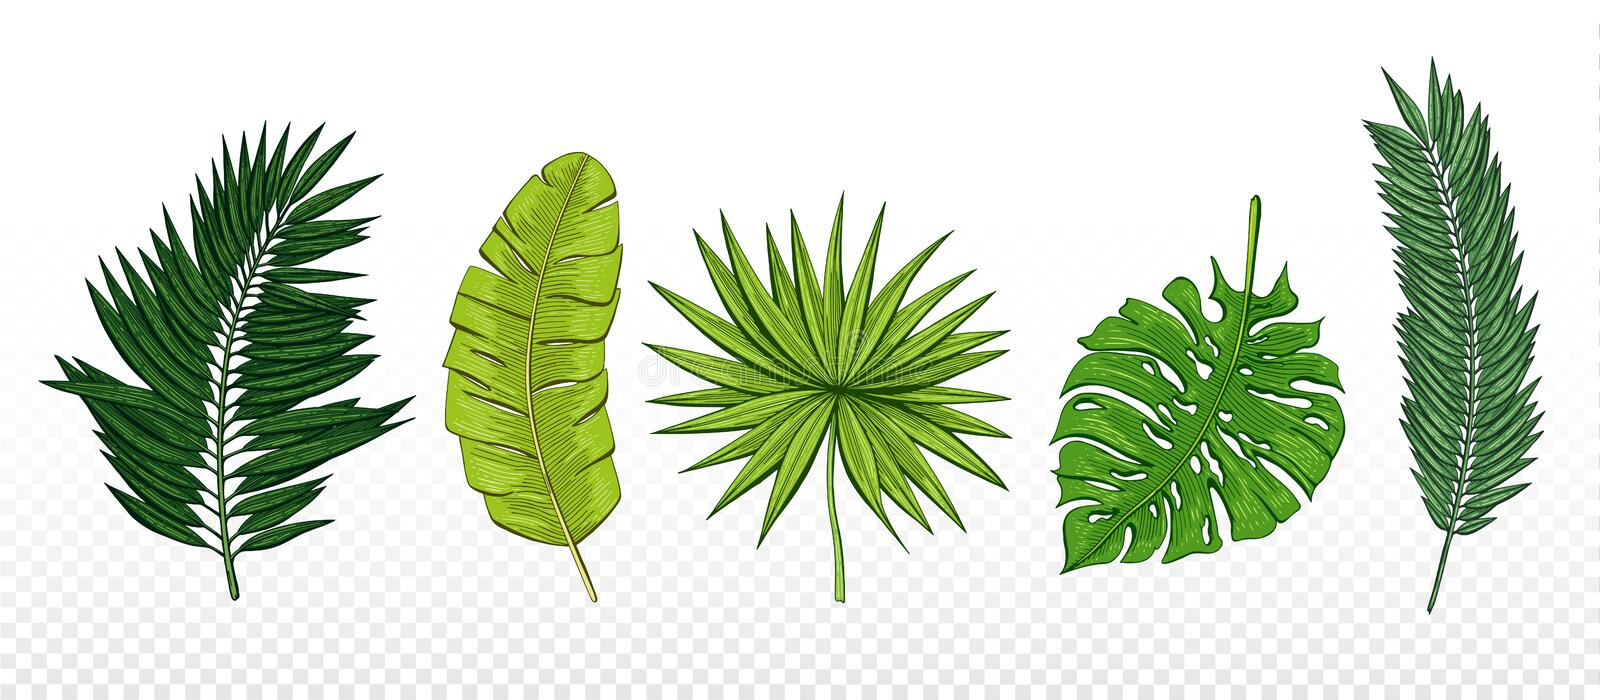 Green hand drawn set with tropical leaves chamaerops, banana palm, chamaedoria, monstera. Design elements for invitations, greetin vector illustration